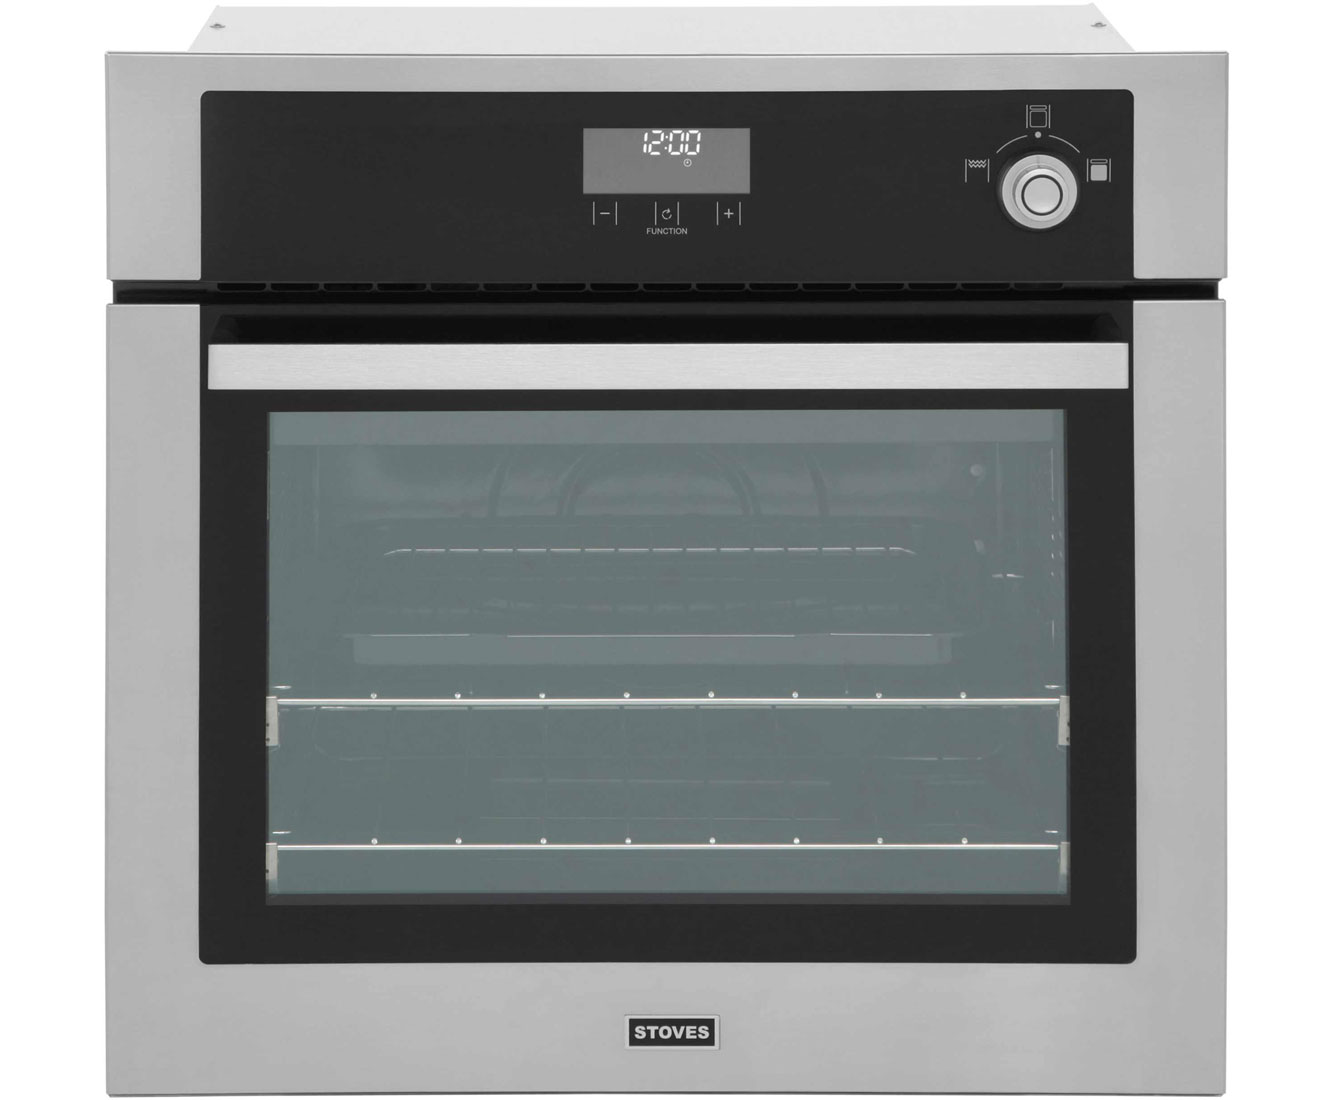 Stoves Professional SGB600MFSe Integrated Single Oven in Stainless Steel